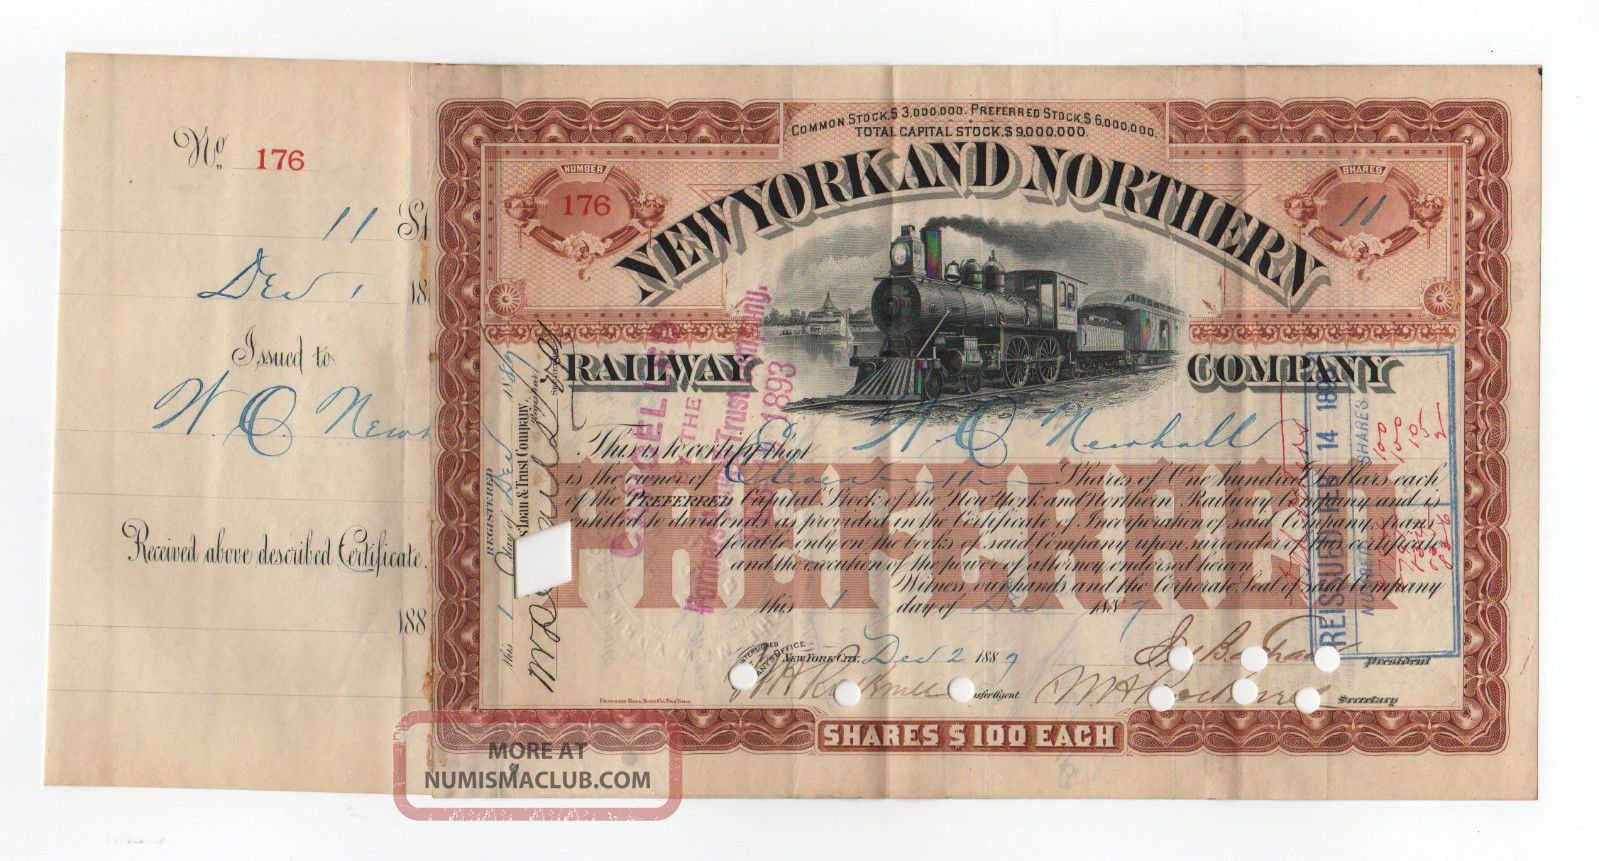 1887 York And Northern Railway Company Stock Certificate Transportation photo